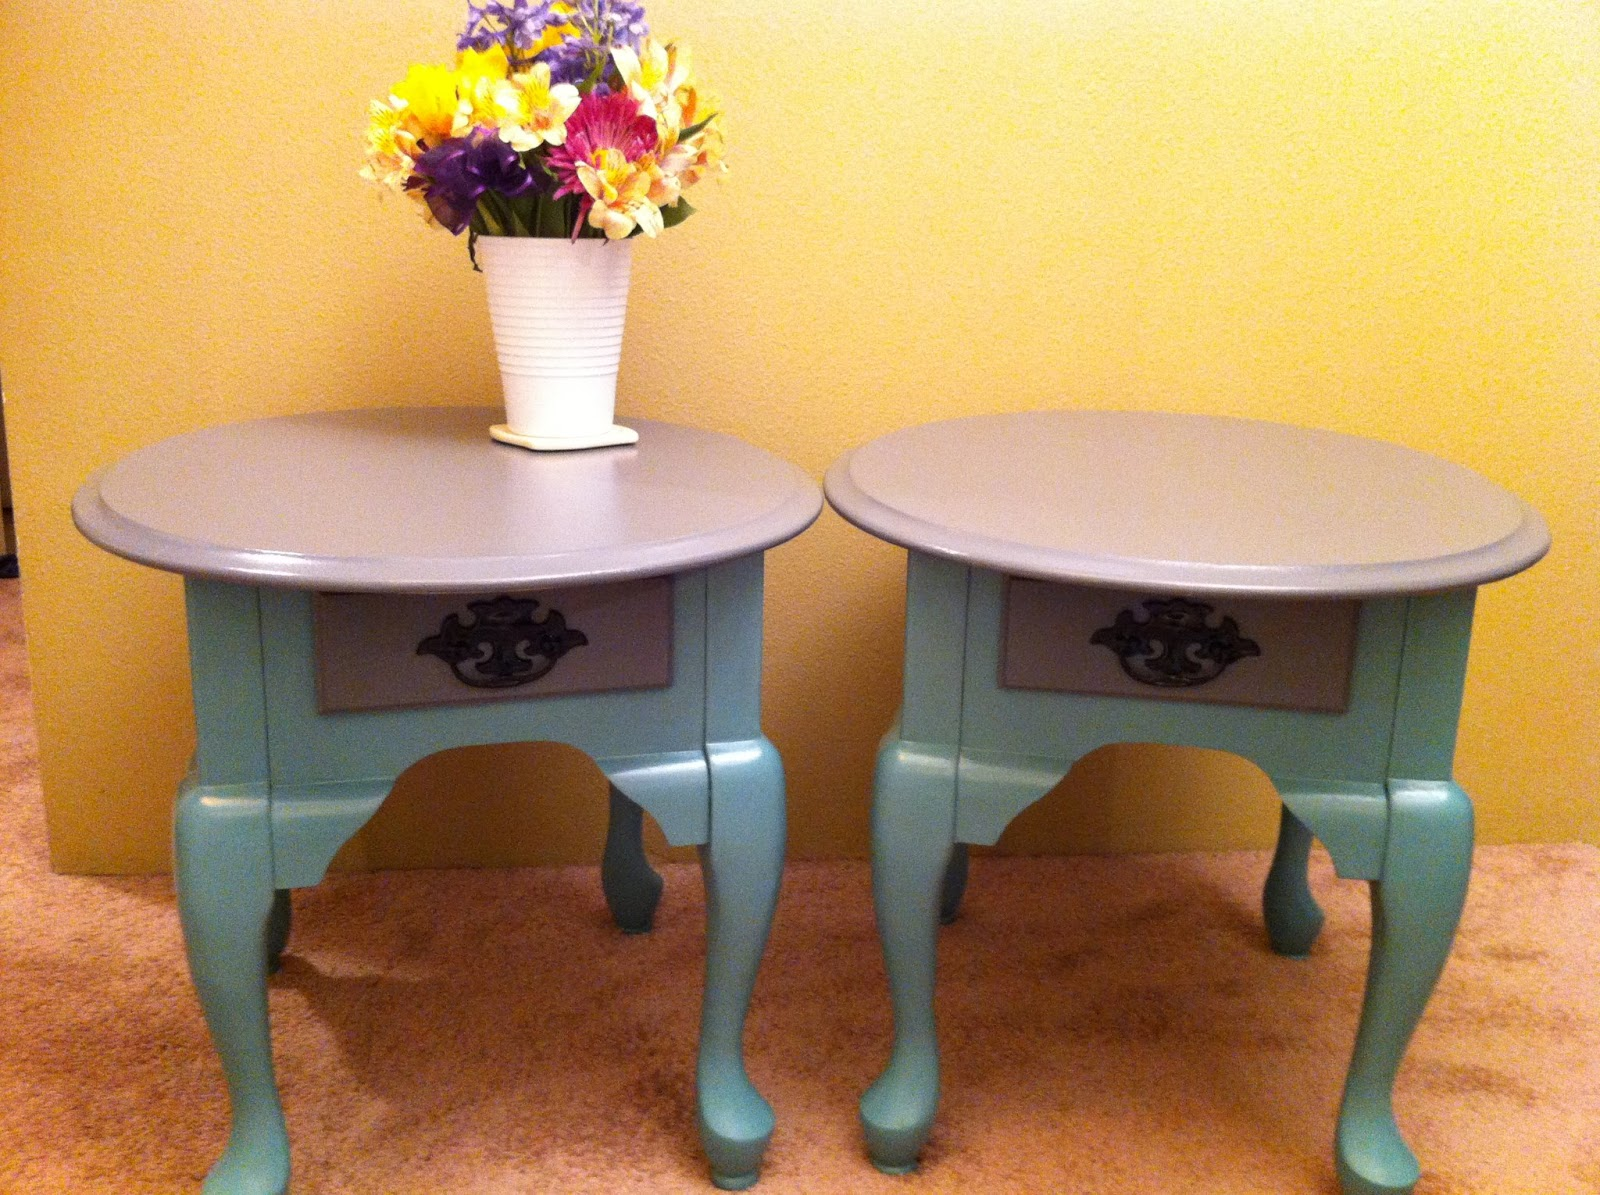 Living Room Set; Sofa Table, End Tables, Coffee Table title=